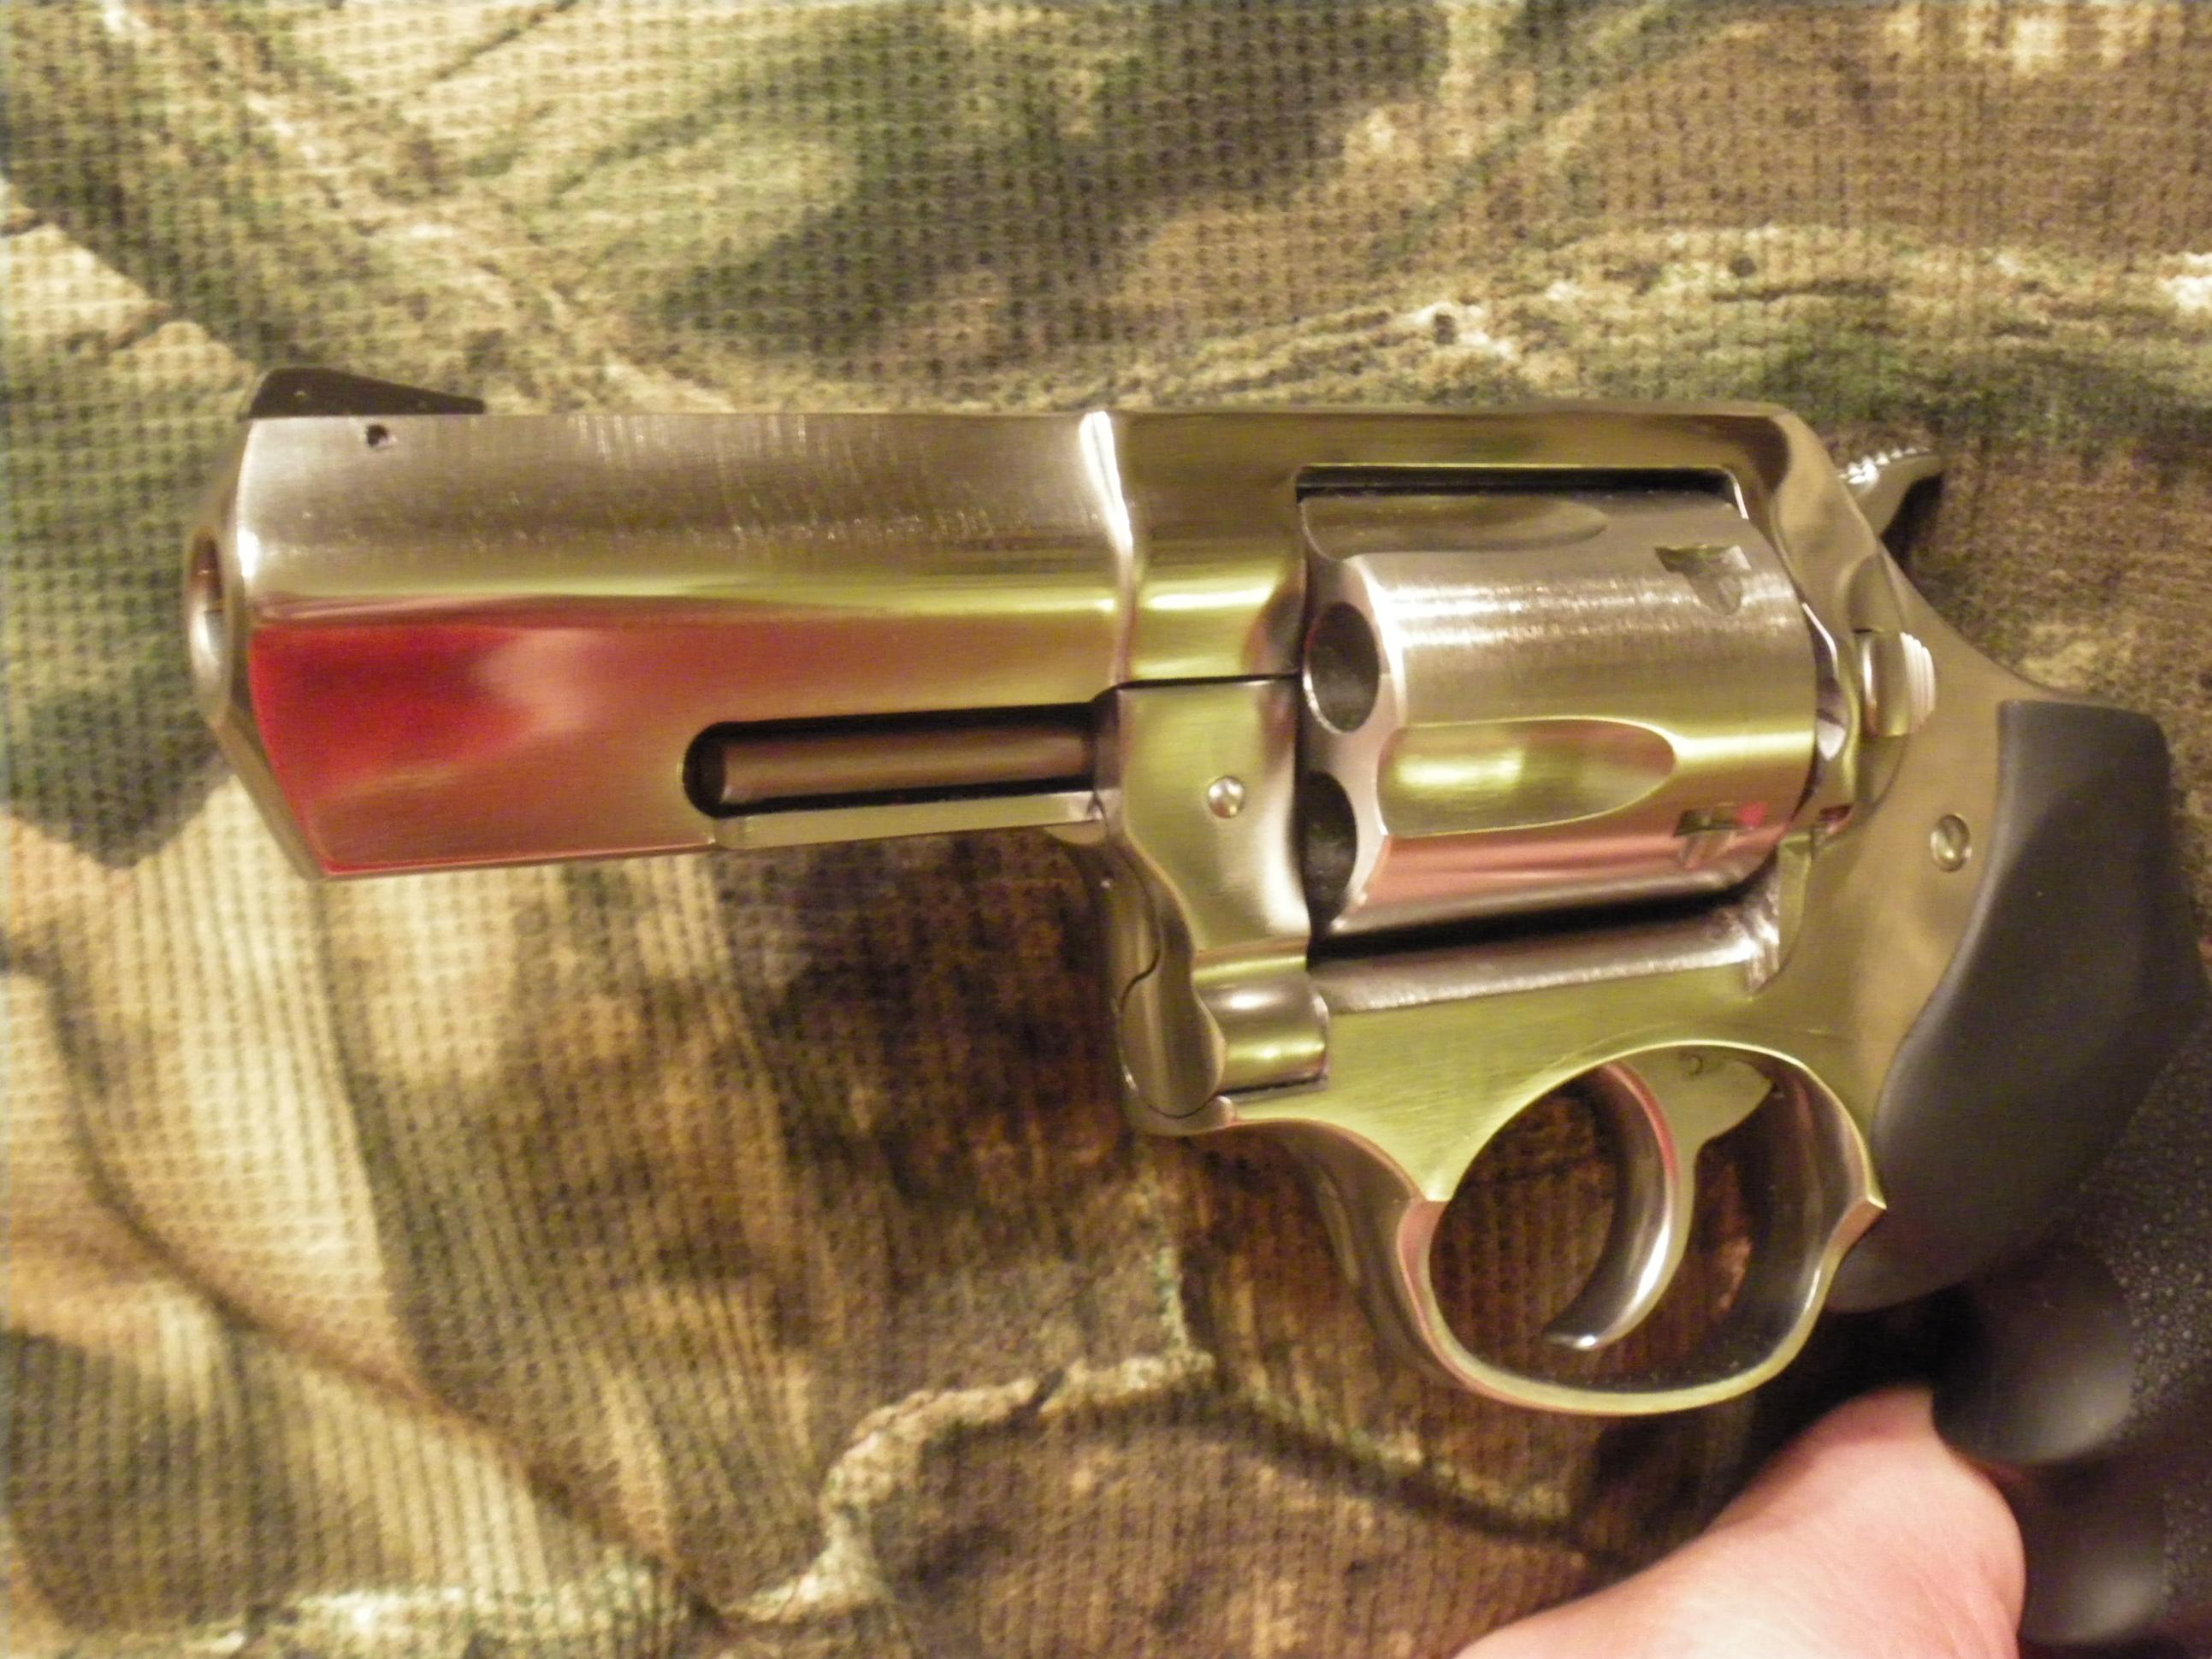 Wheelgun-itis Strikes Again.....New Ruger and a New Carry Blade-2012-10-16-09.41.25.jpg